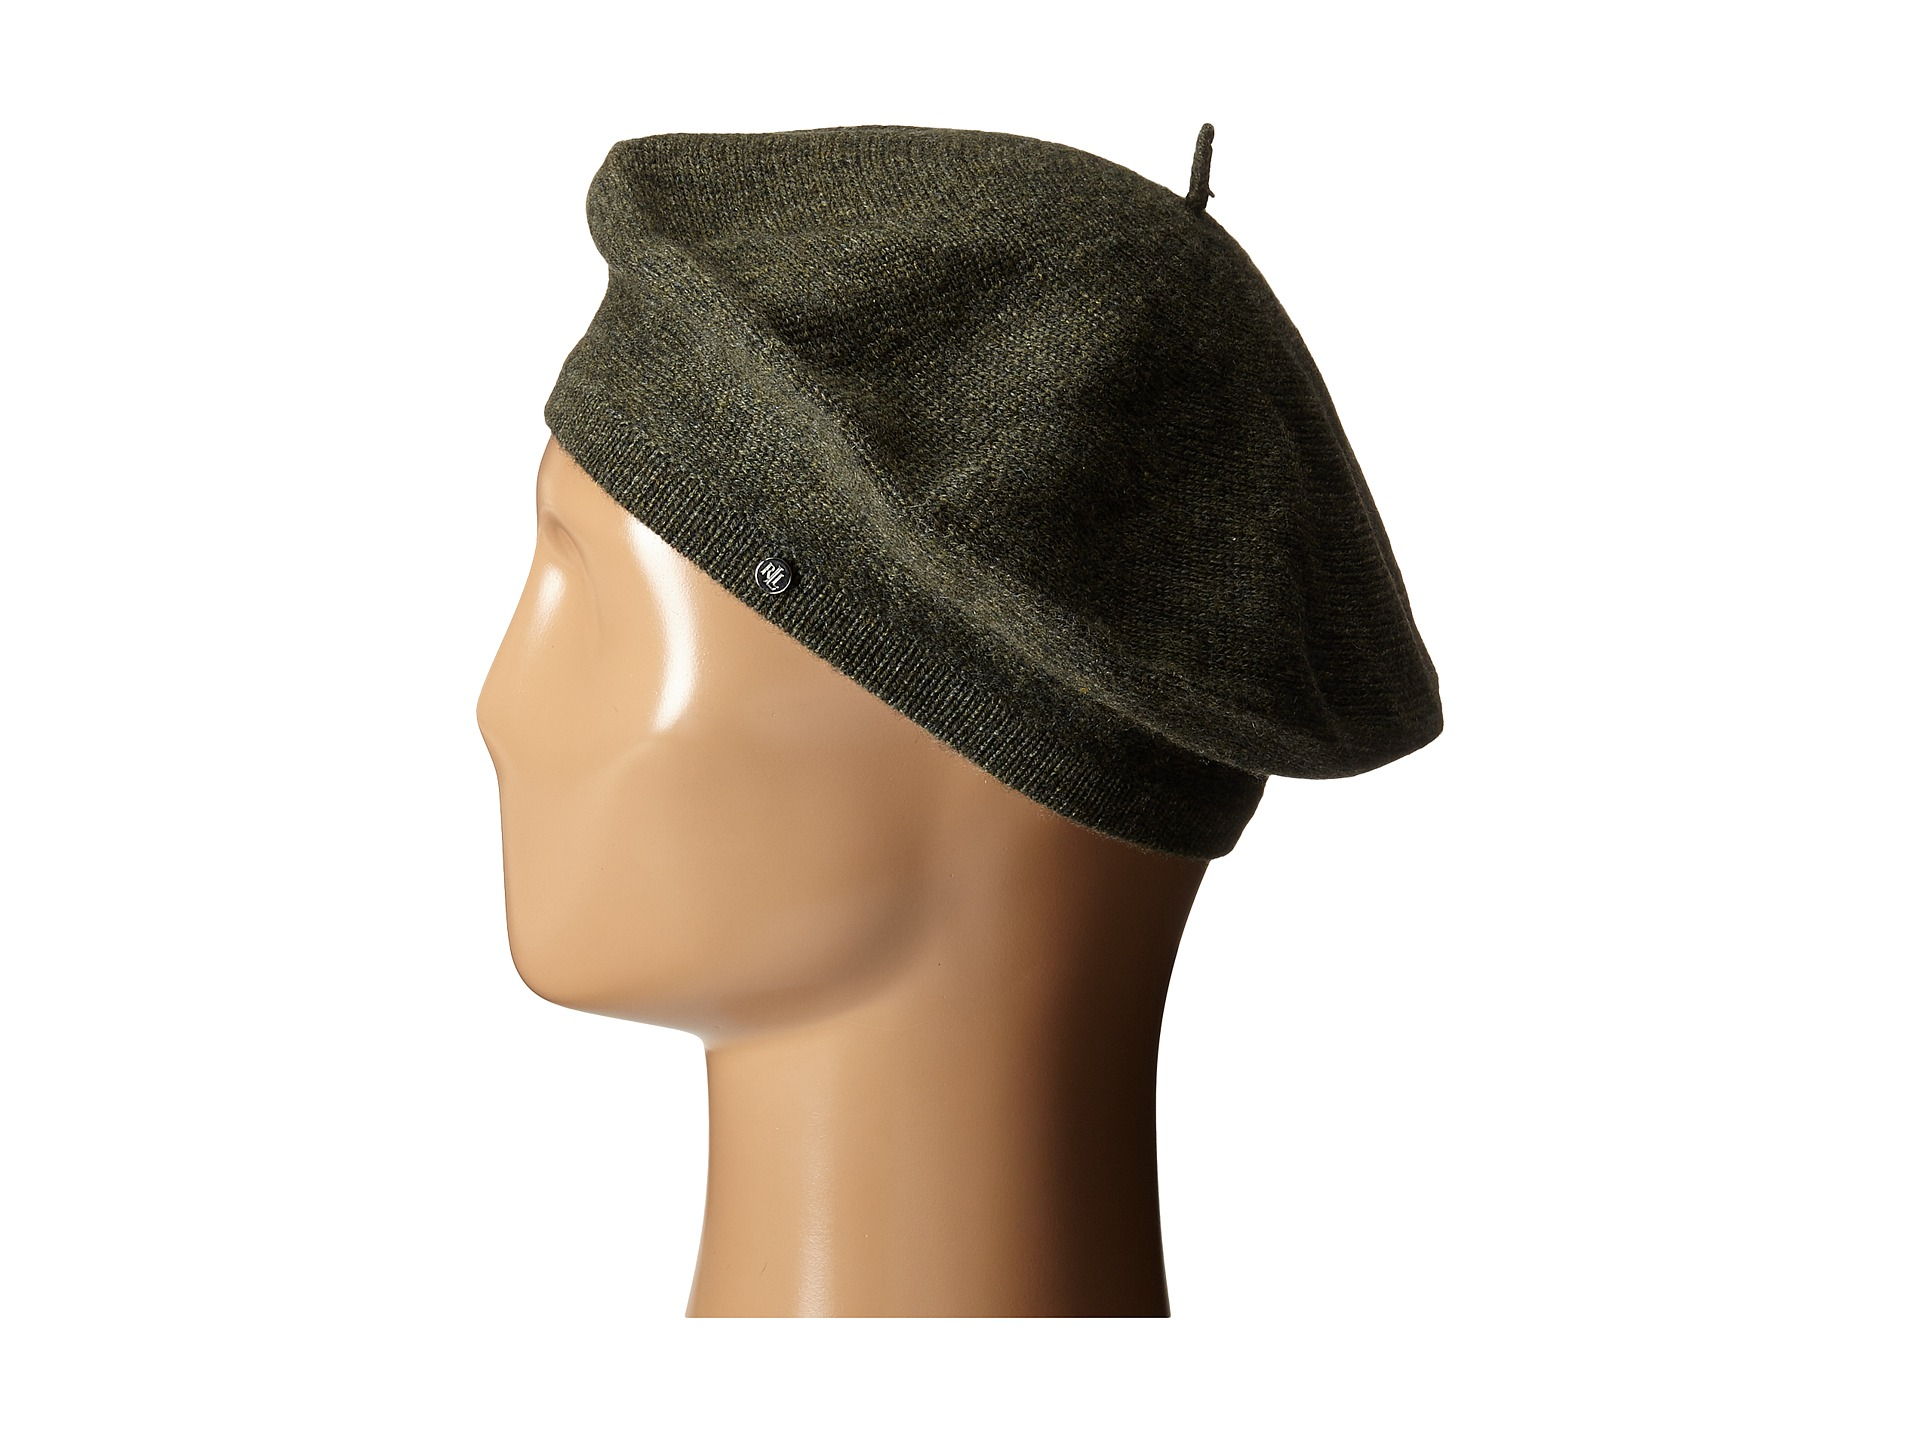 LAUREN by Ralph Lauren Cashmere Beret - Zappos.com Free Shipping BOTH Ways